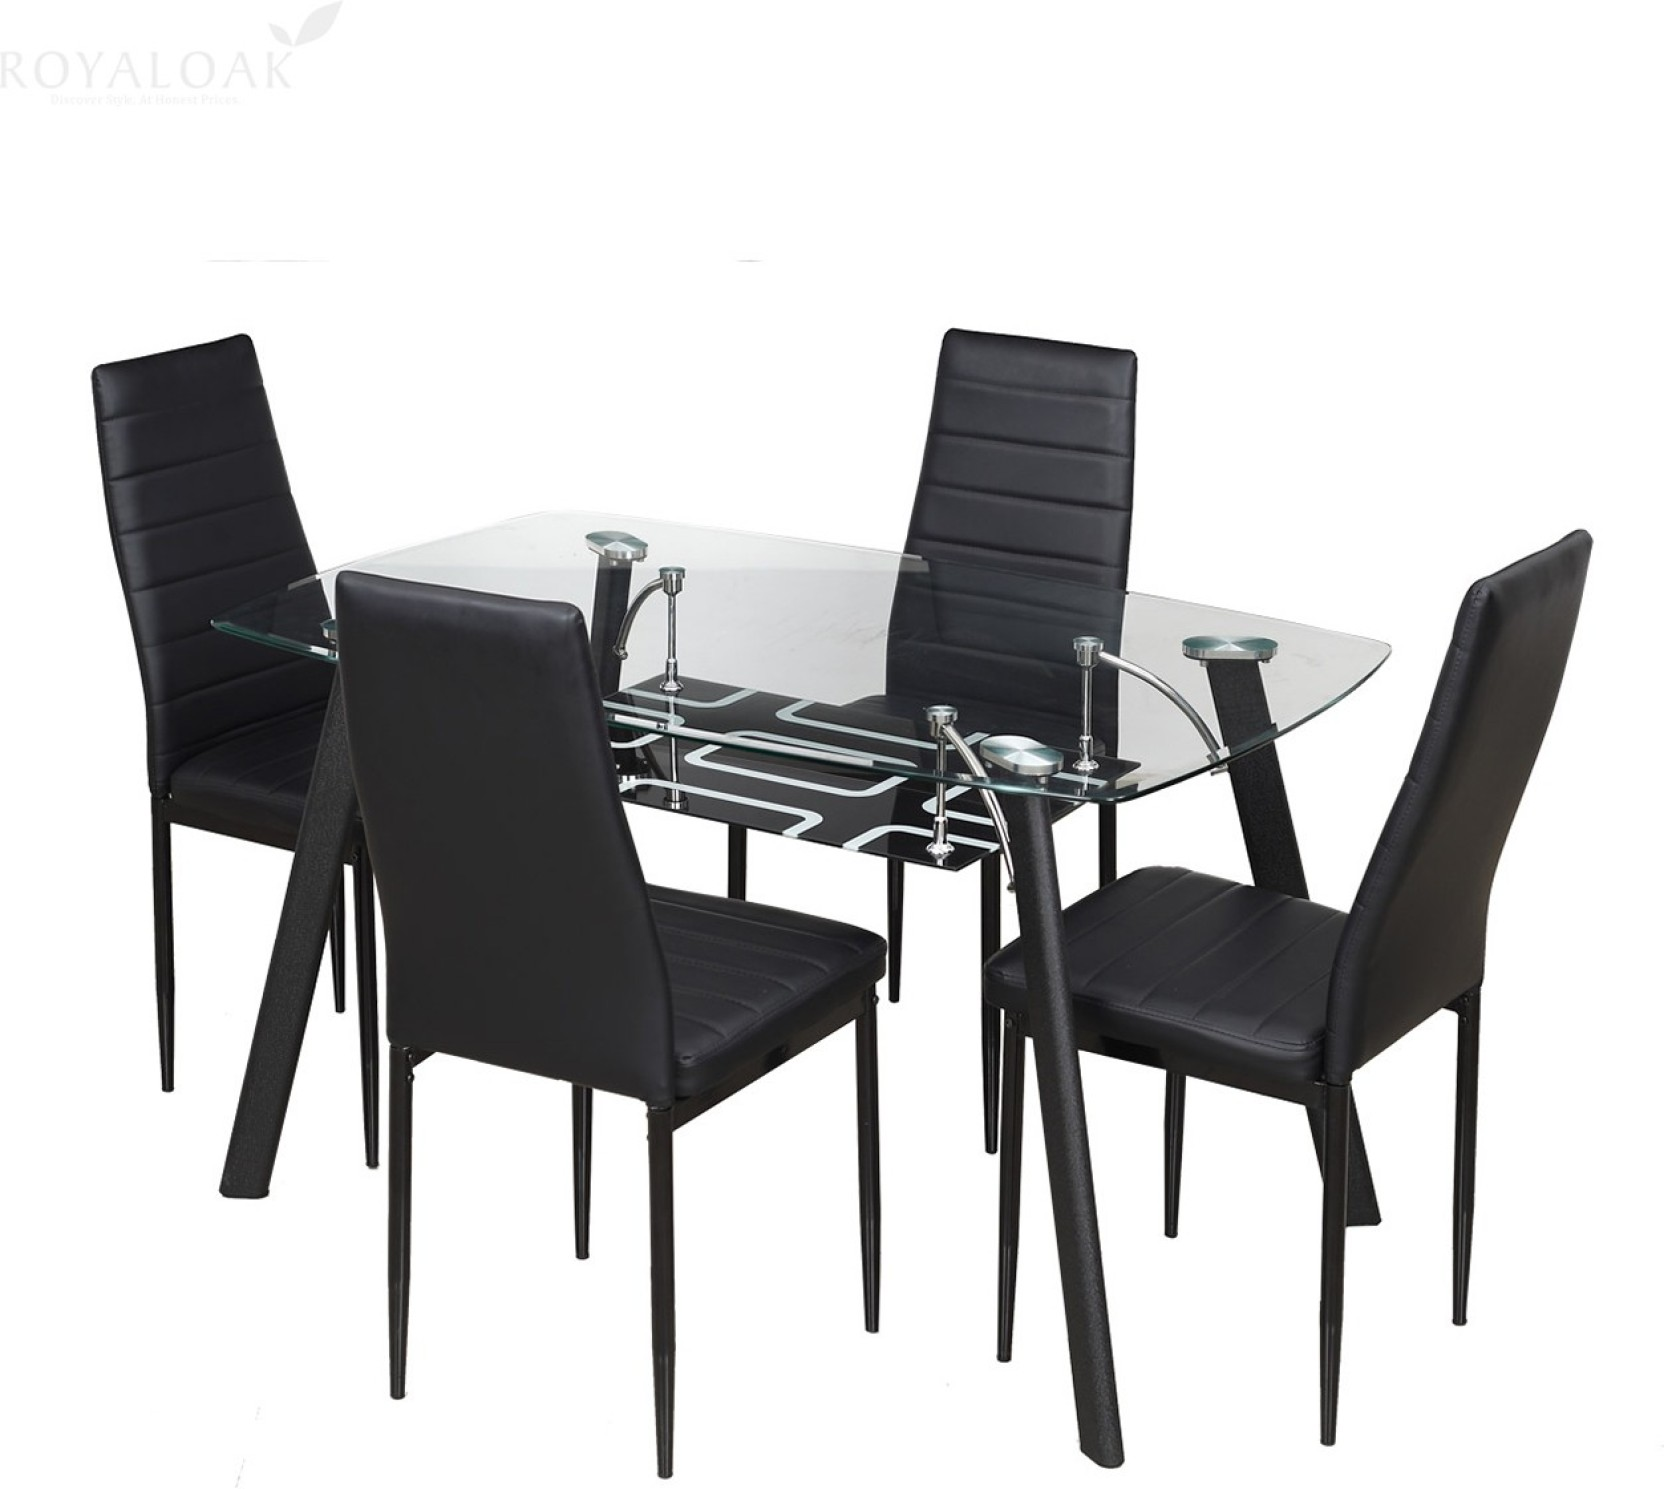 Royaloak milan glass 4 seater dining set price in india for Dining table with 6 chairs cheap